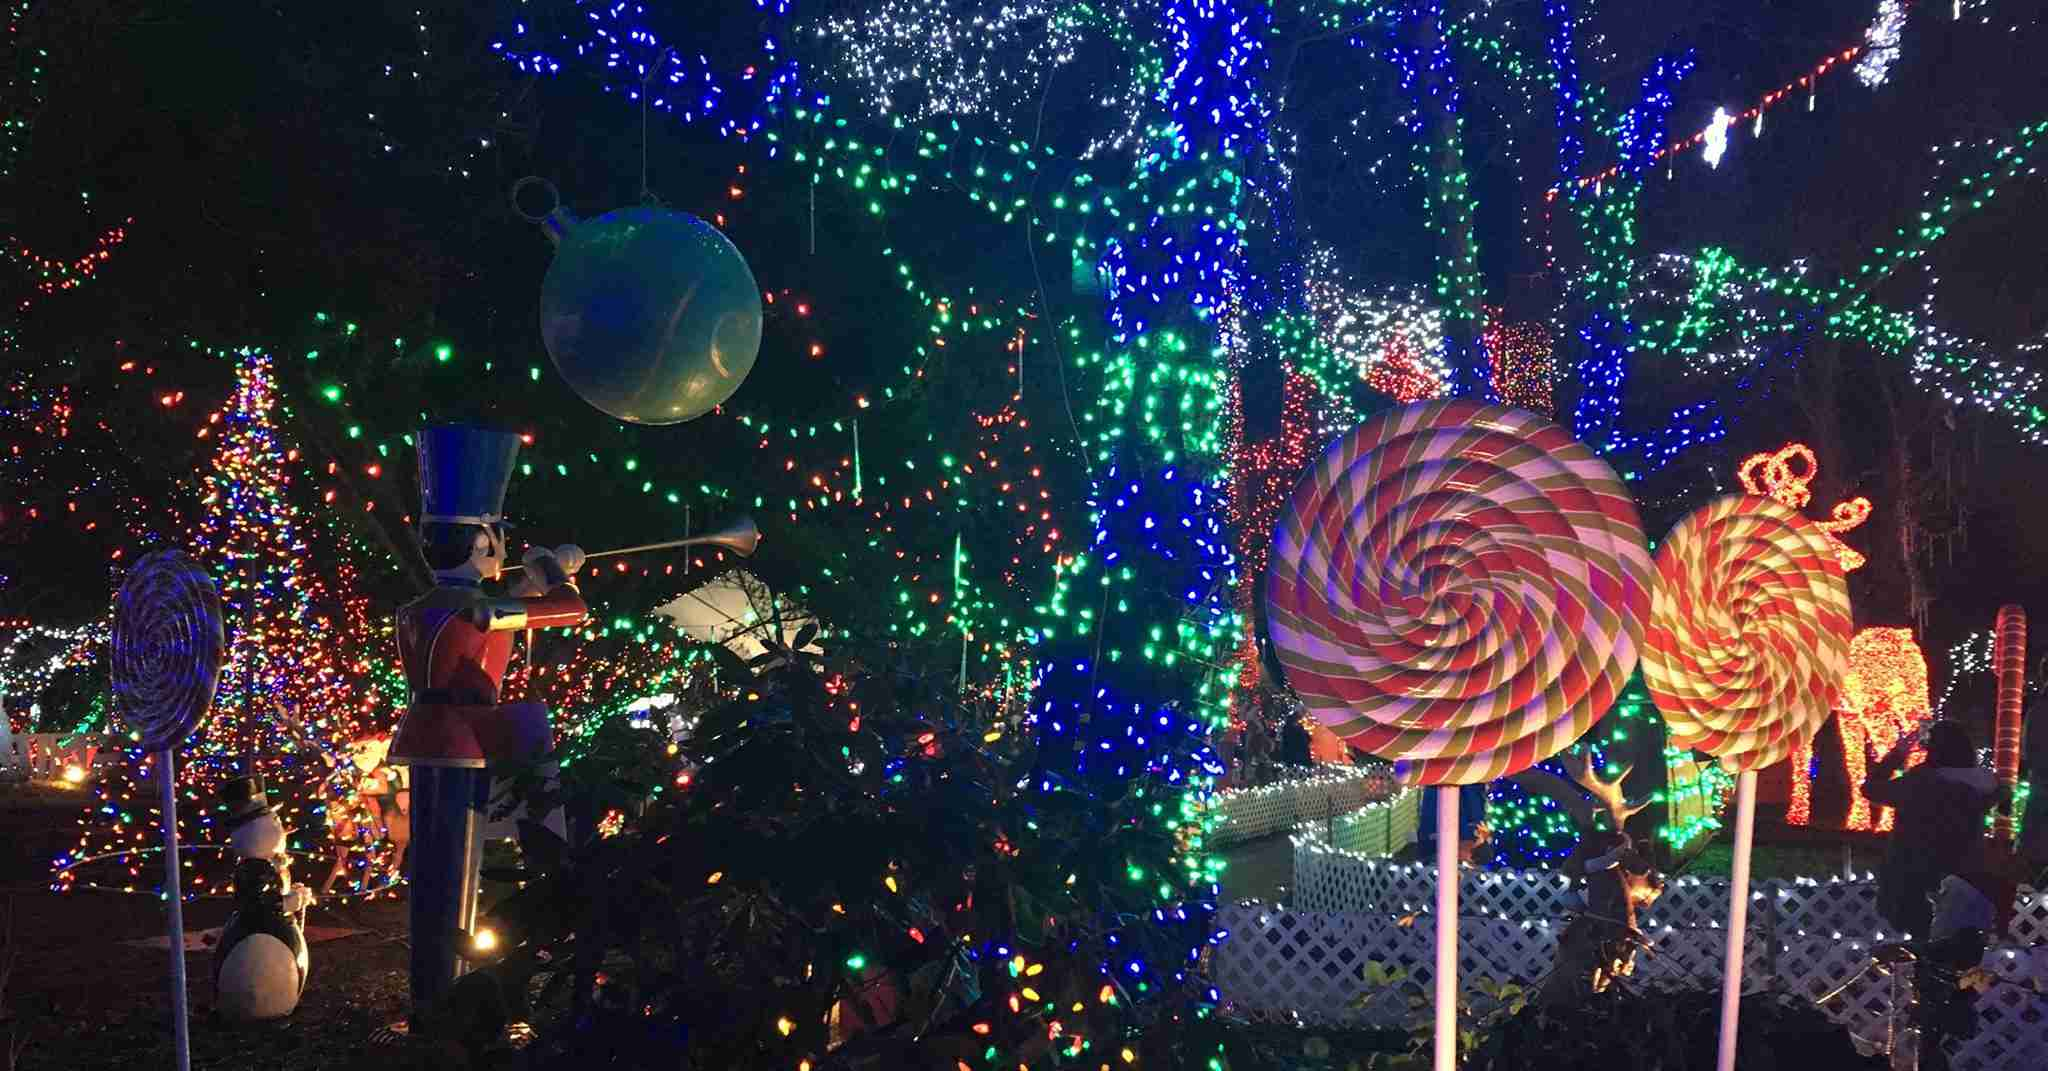 Vancouver Christmas.Top 9 Christmas Attractions In Vancouver Canada